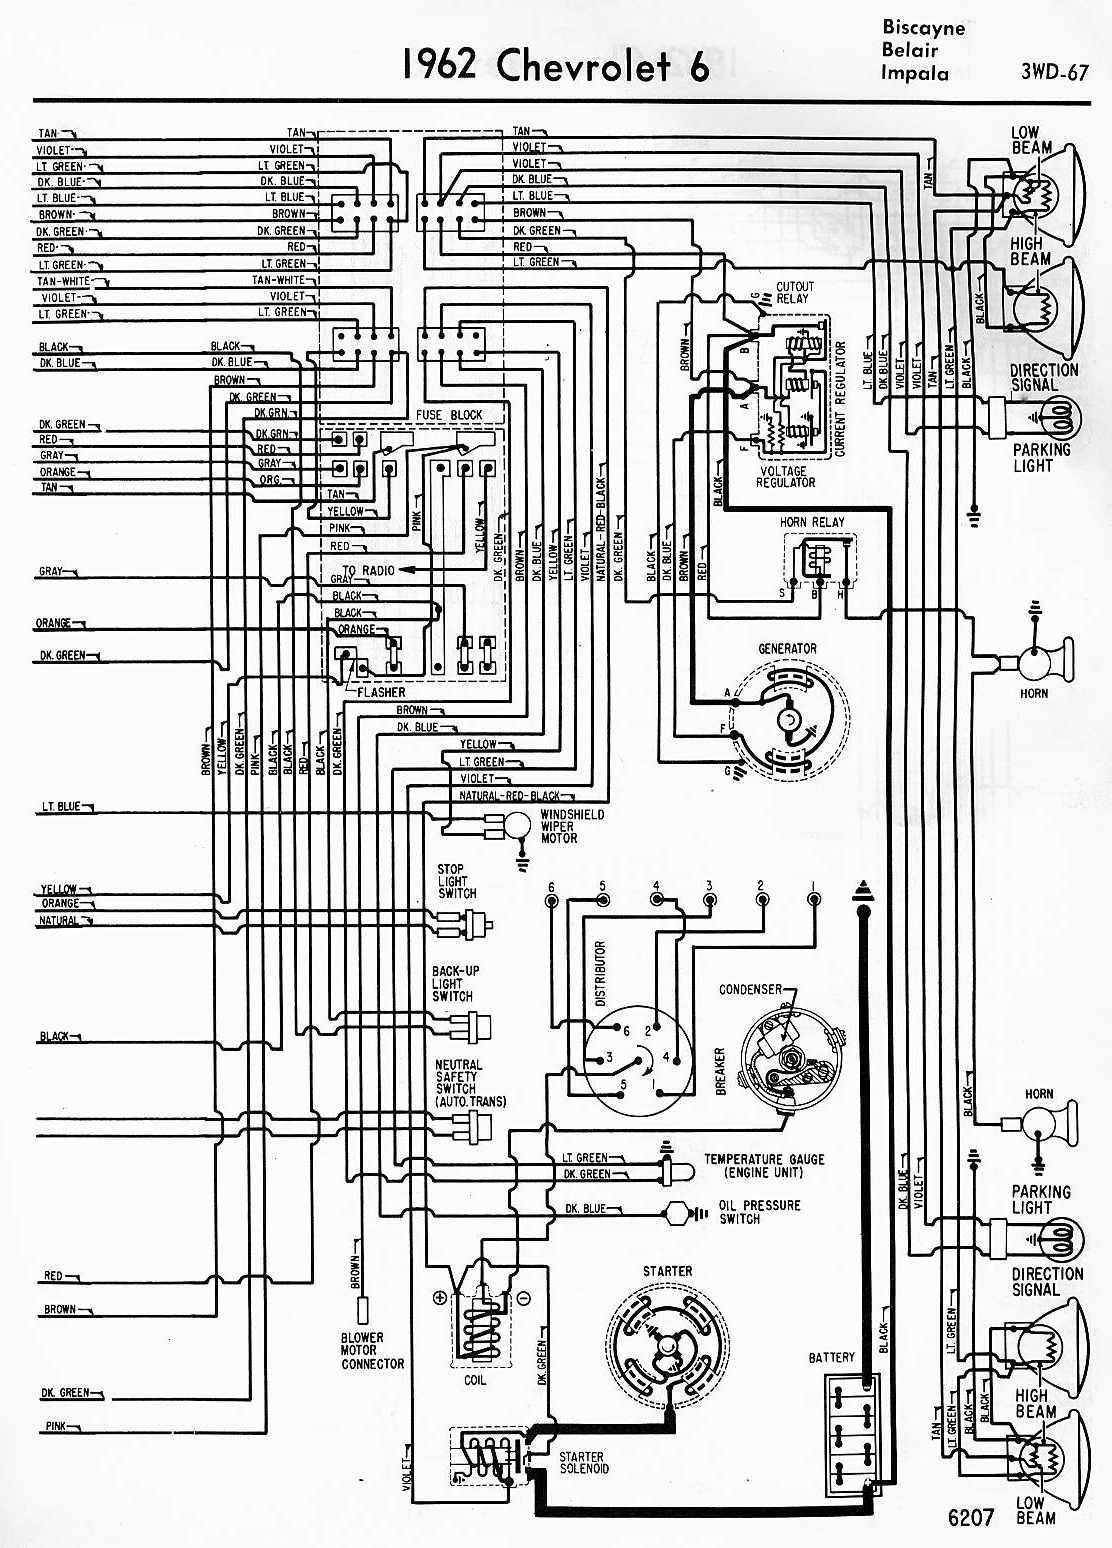 1967 Chevelle Fuse Box Panel Simple Wiring Diagram 67 Wire Harness Furthermore On Mekecom Heater Core